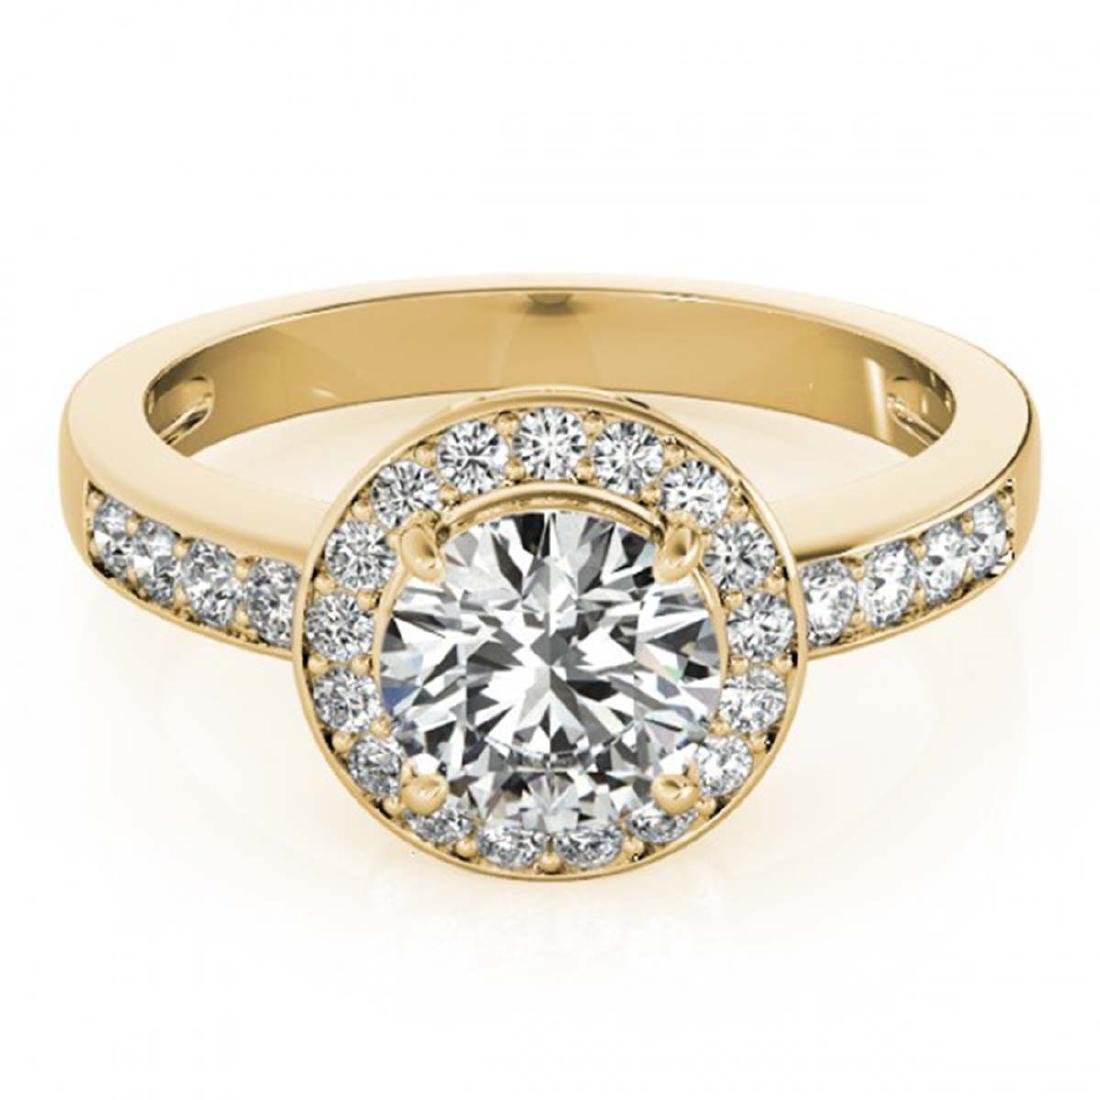 1.20 ctw VS/SI Diamond Halo Ring 18K Yellow Gold -